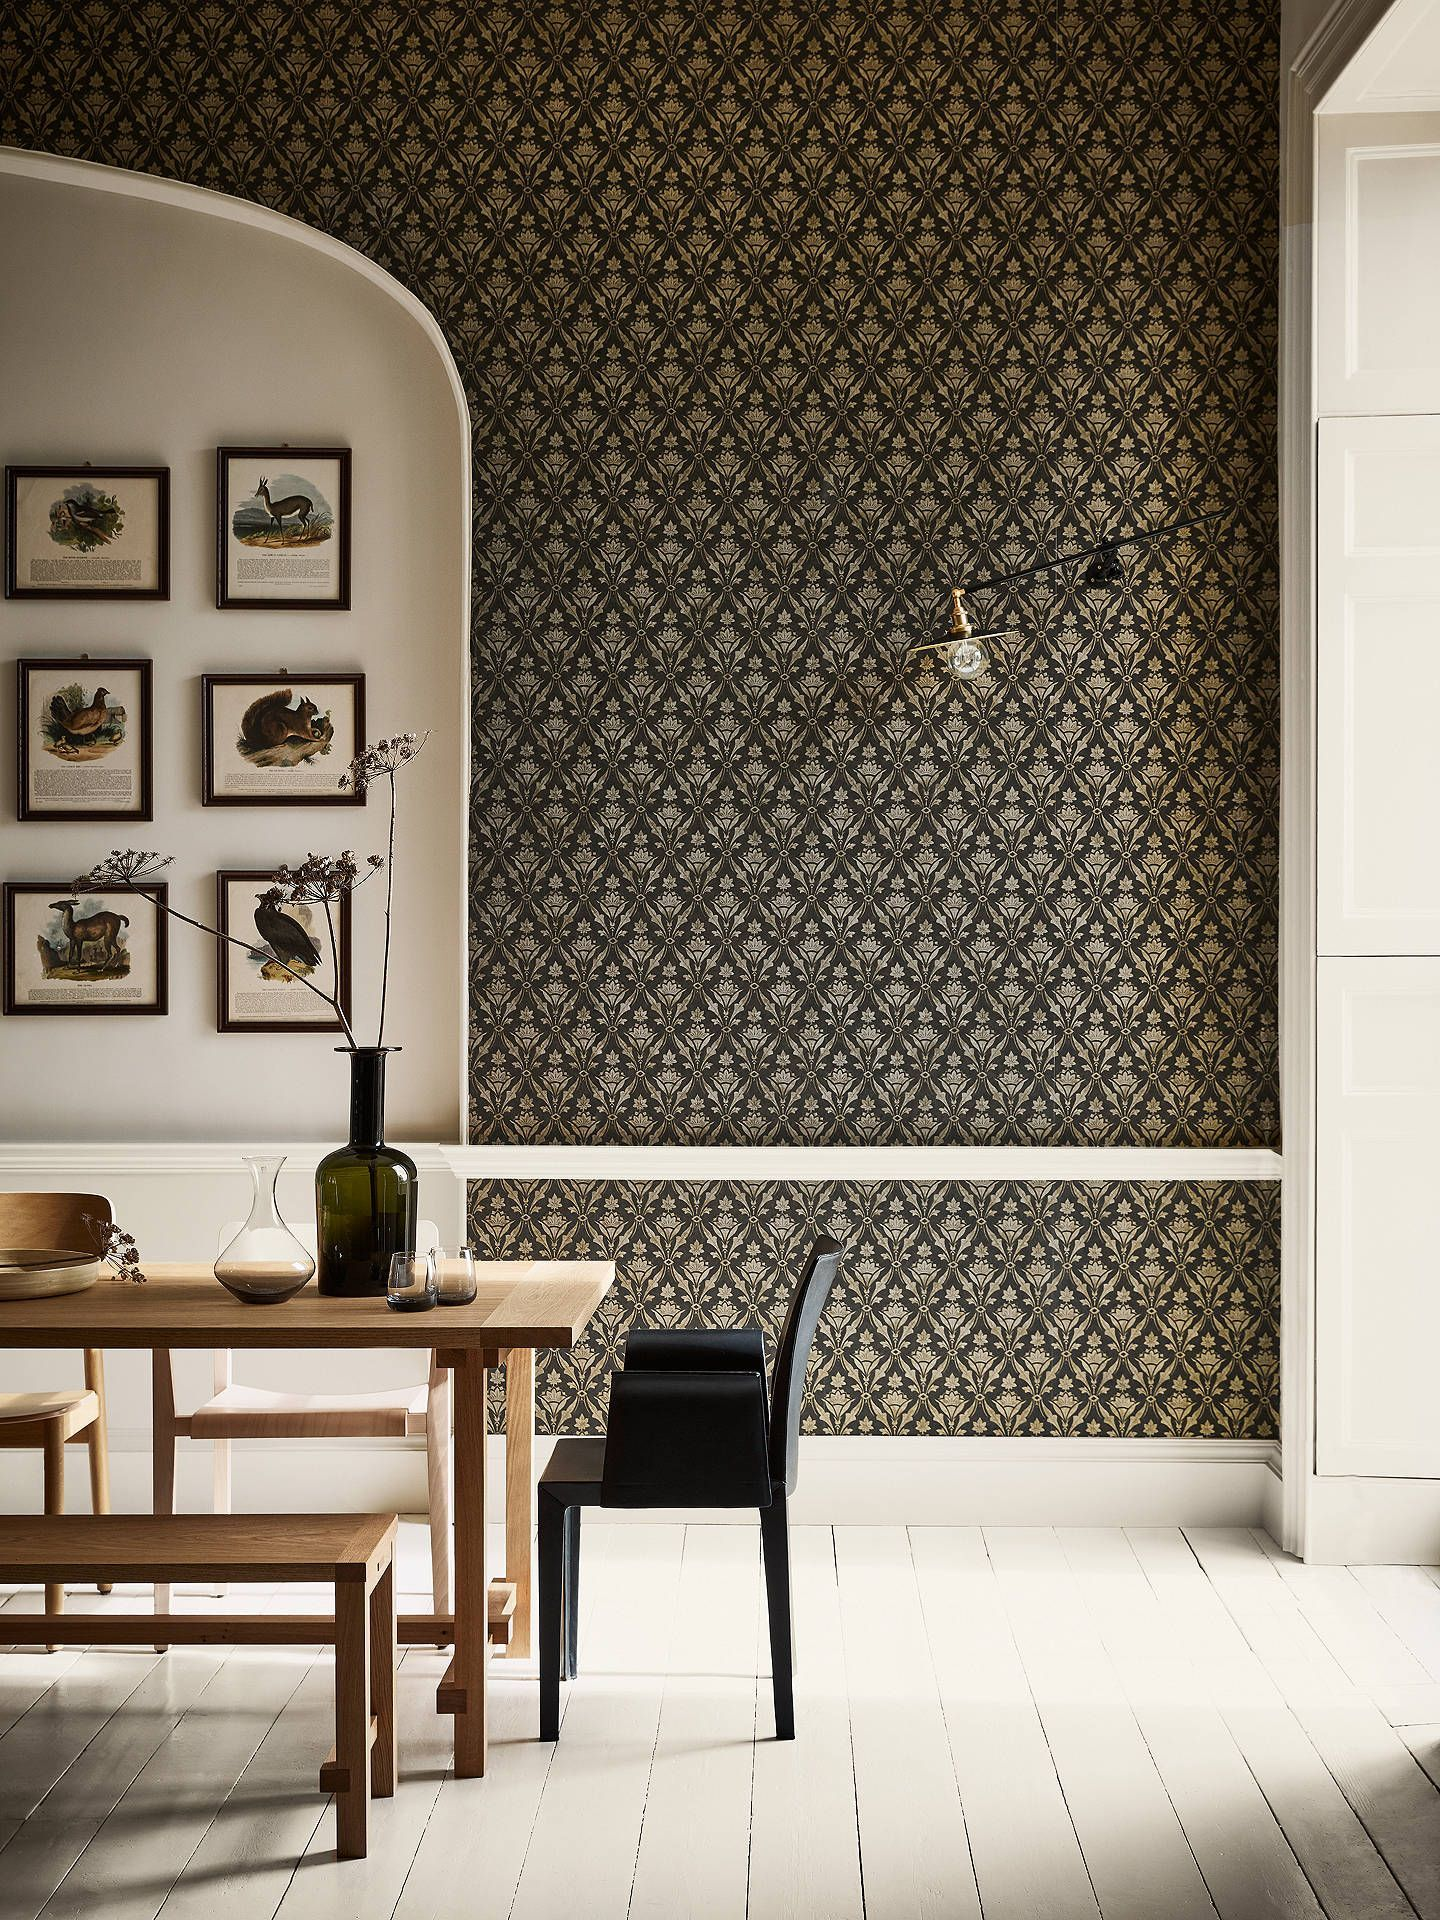 Kitchen Wallpaper Design Ideas 15 Beautiful Ways To Add Character Bathroom Wallpaper Contemporary